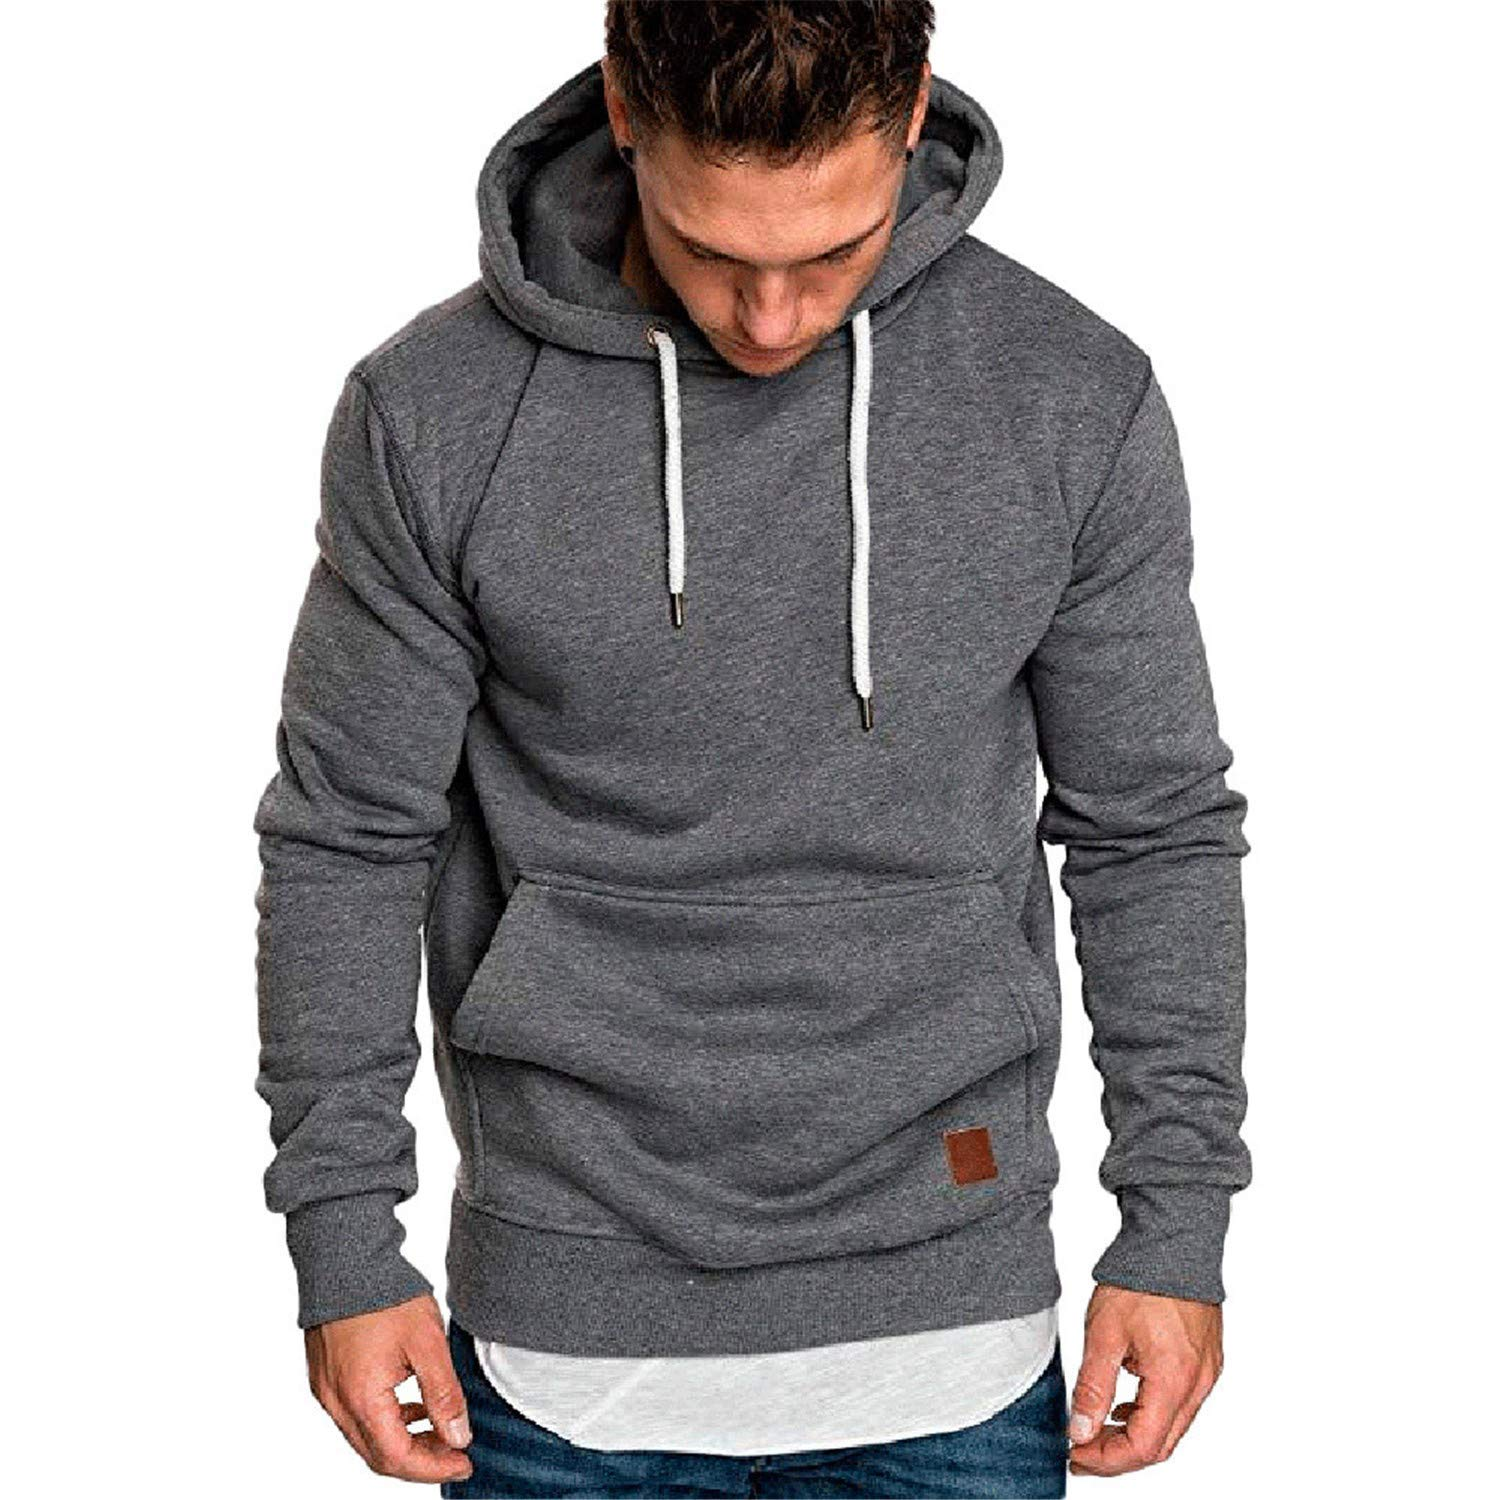 33fd77604 DarkGrey elephanted Sweater Men New Hoodies Brand Solid Hoodie Hoodie Hoodie  Men Black Red Big Size Poleron Hombre 0925 a81081